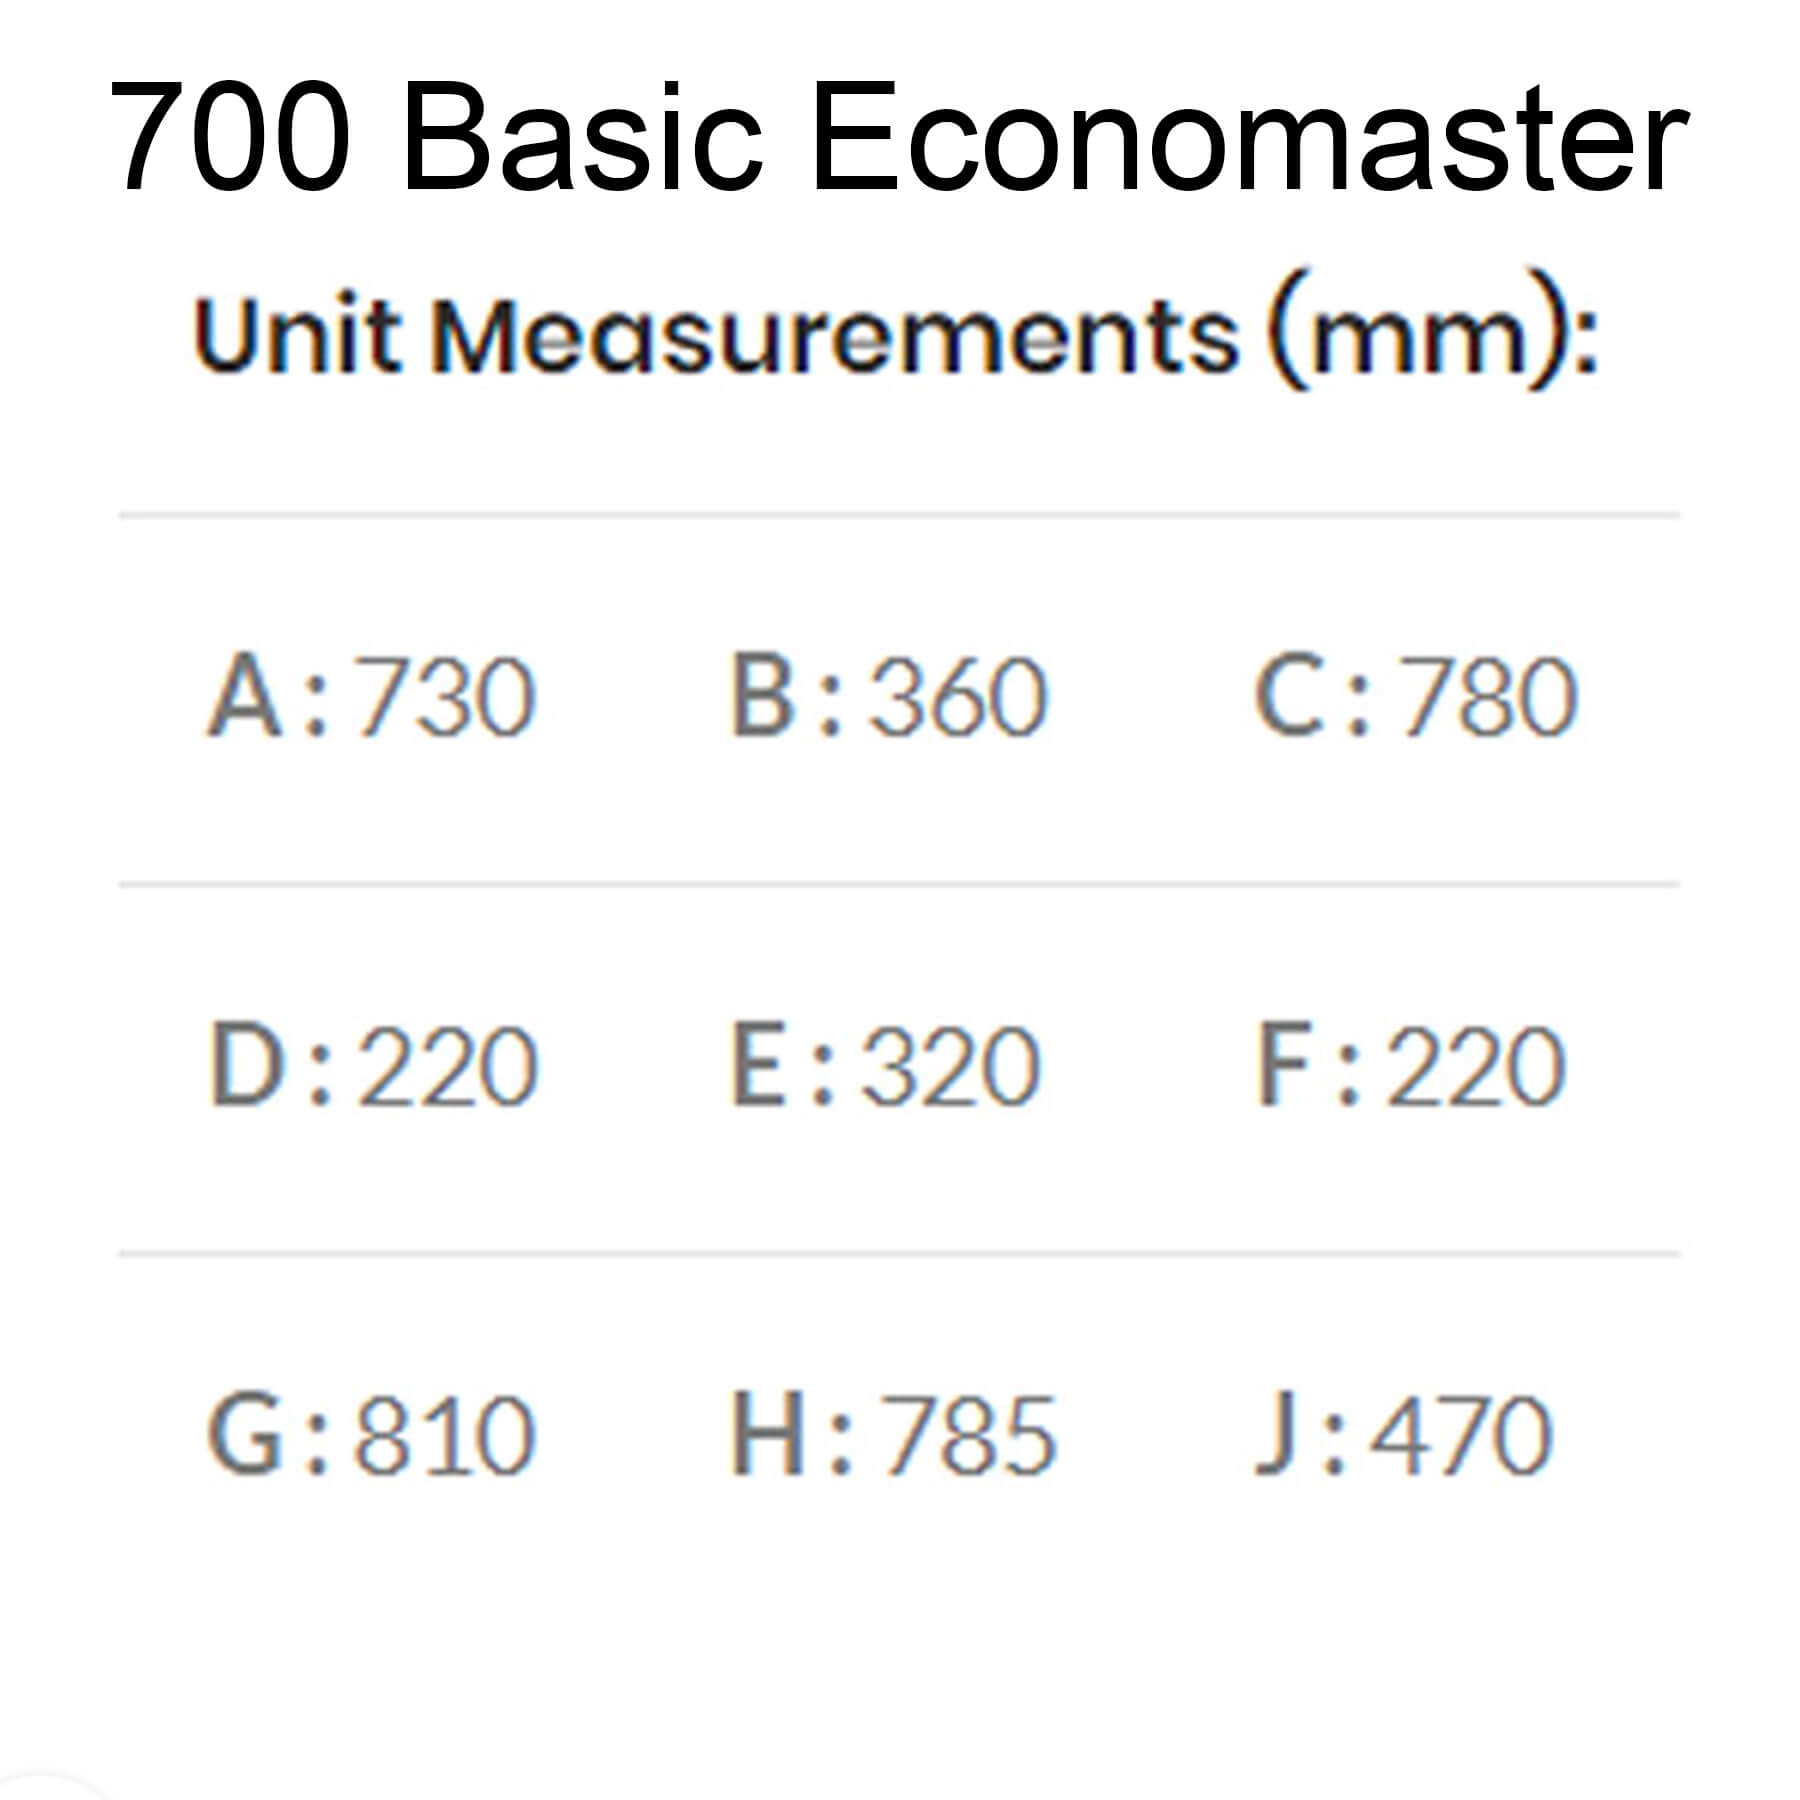 Technical-Specifications-Dimensions-700-Basic-Economaster-Braai